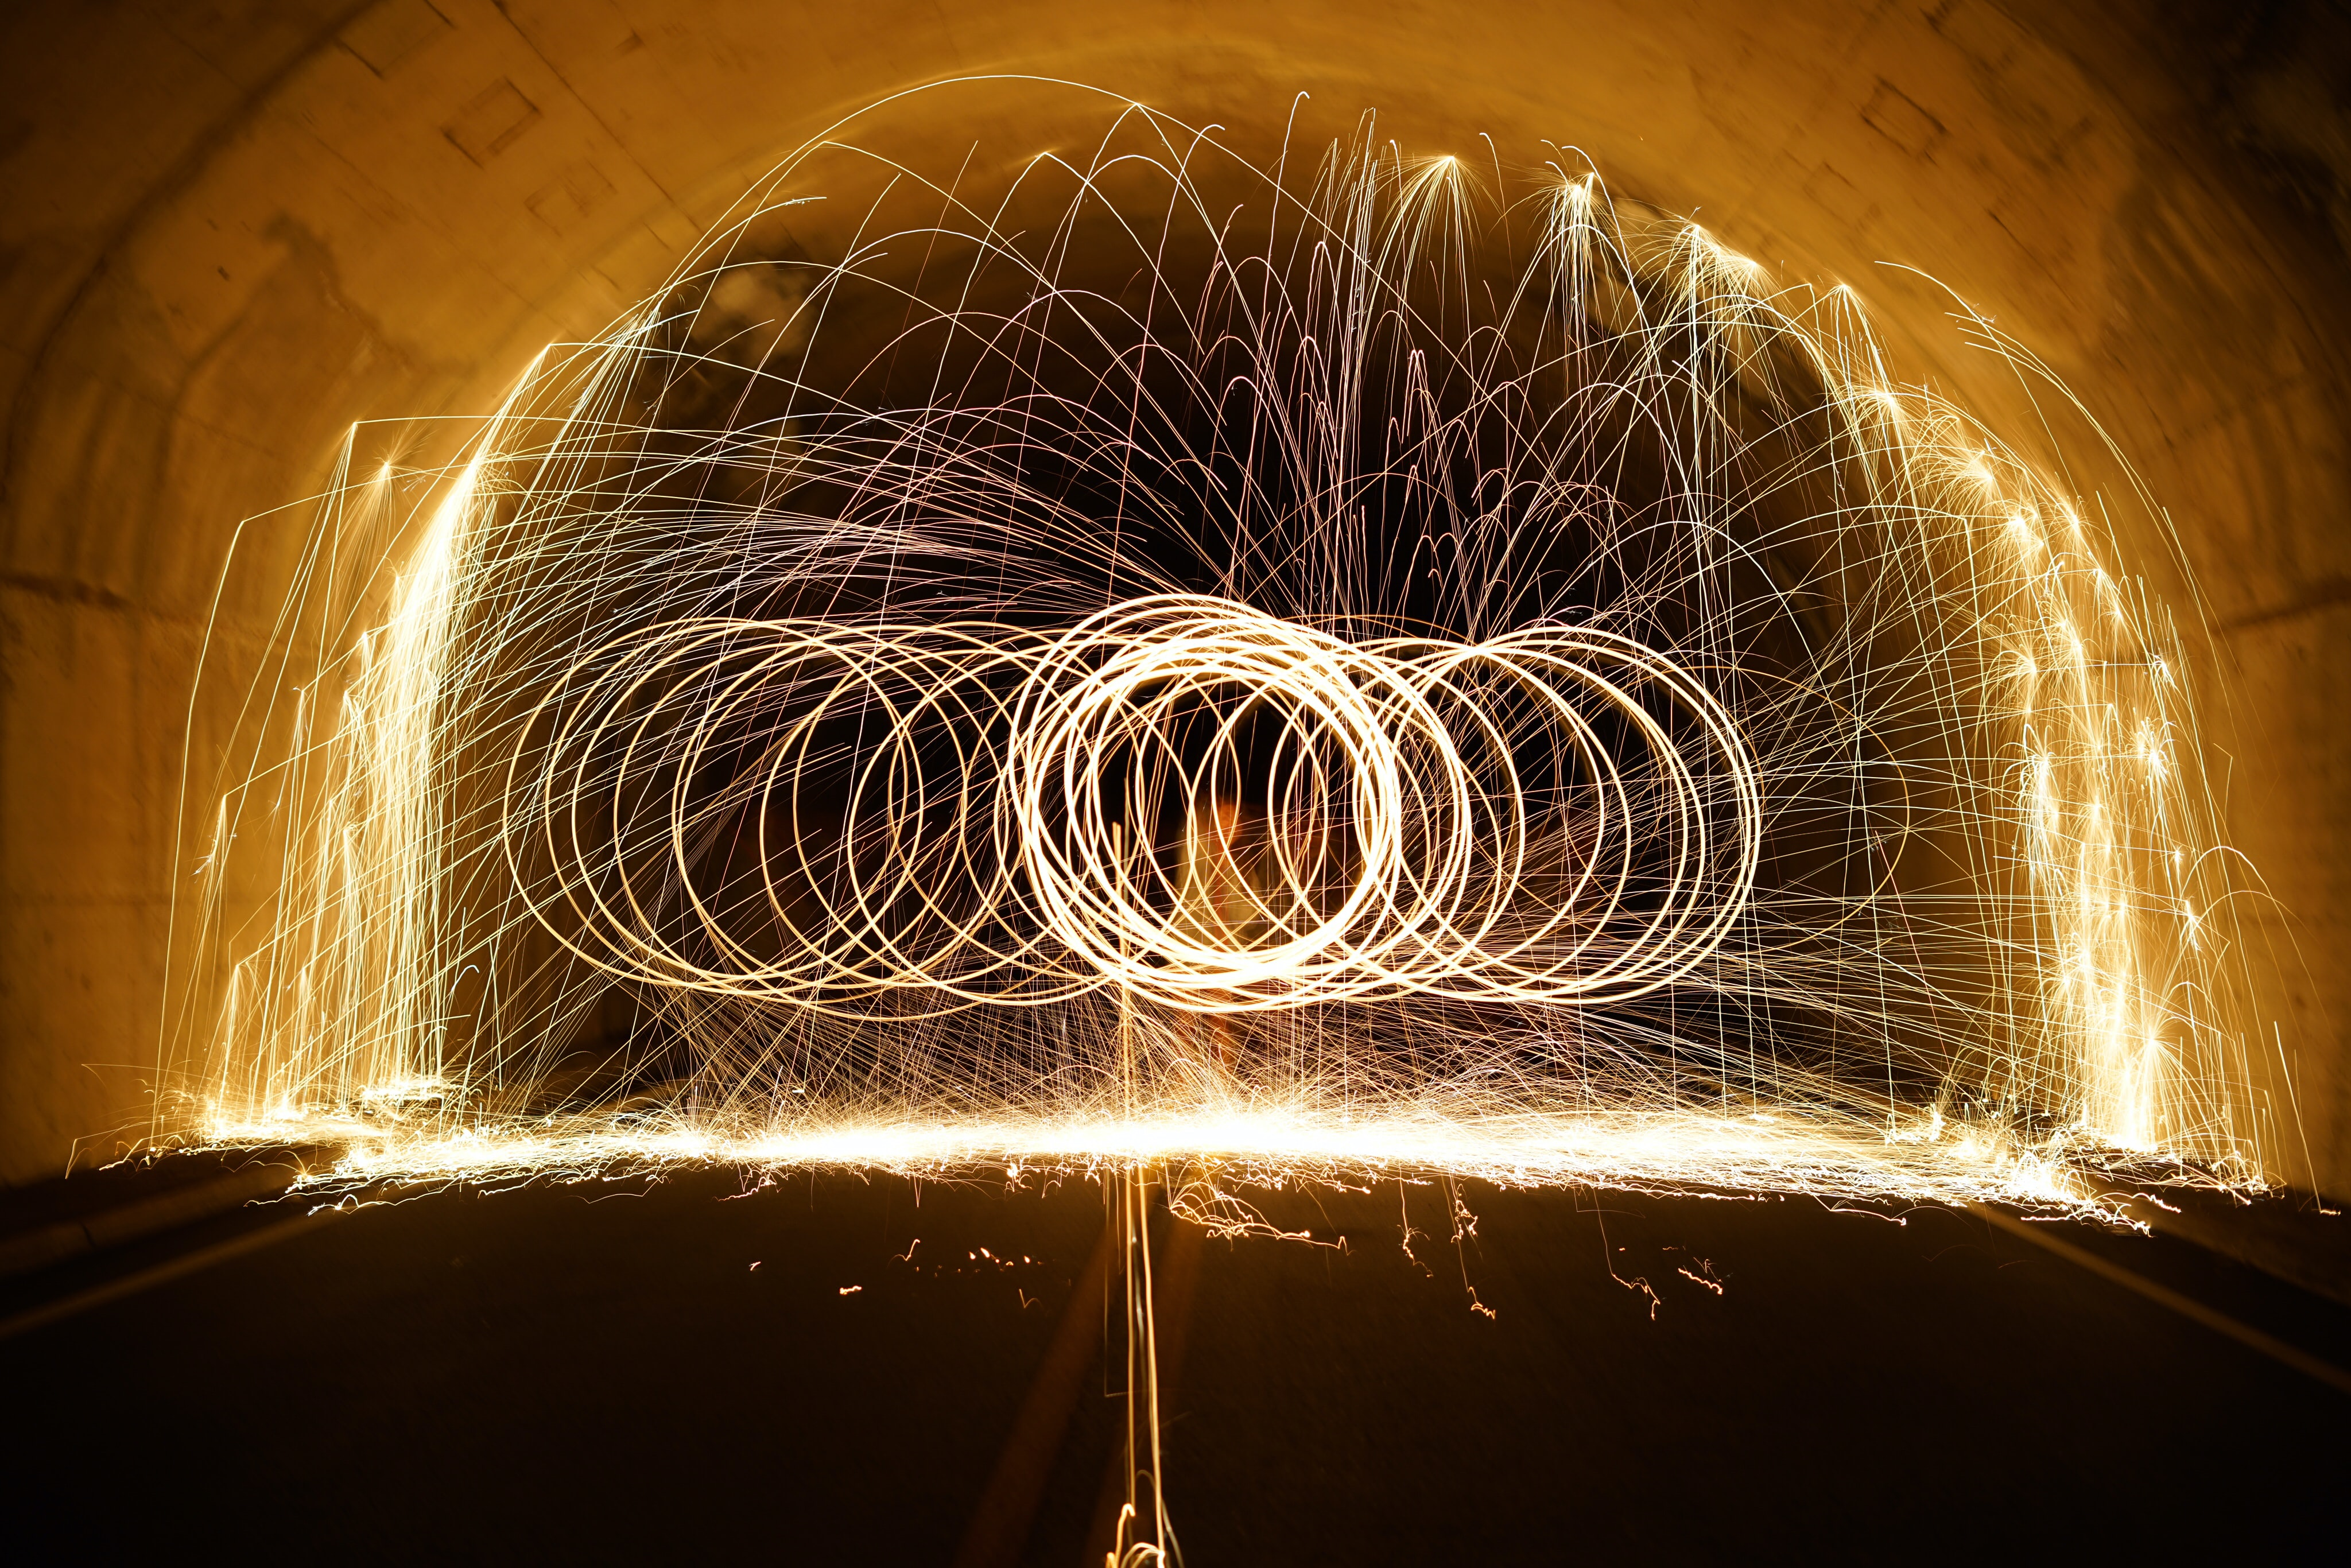 steel wool photography of tunnel at nighttime